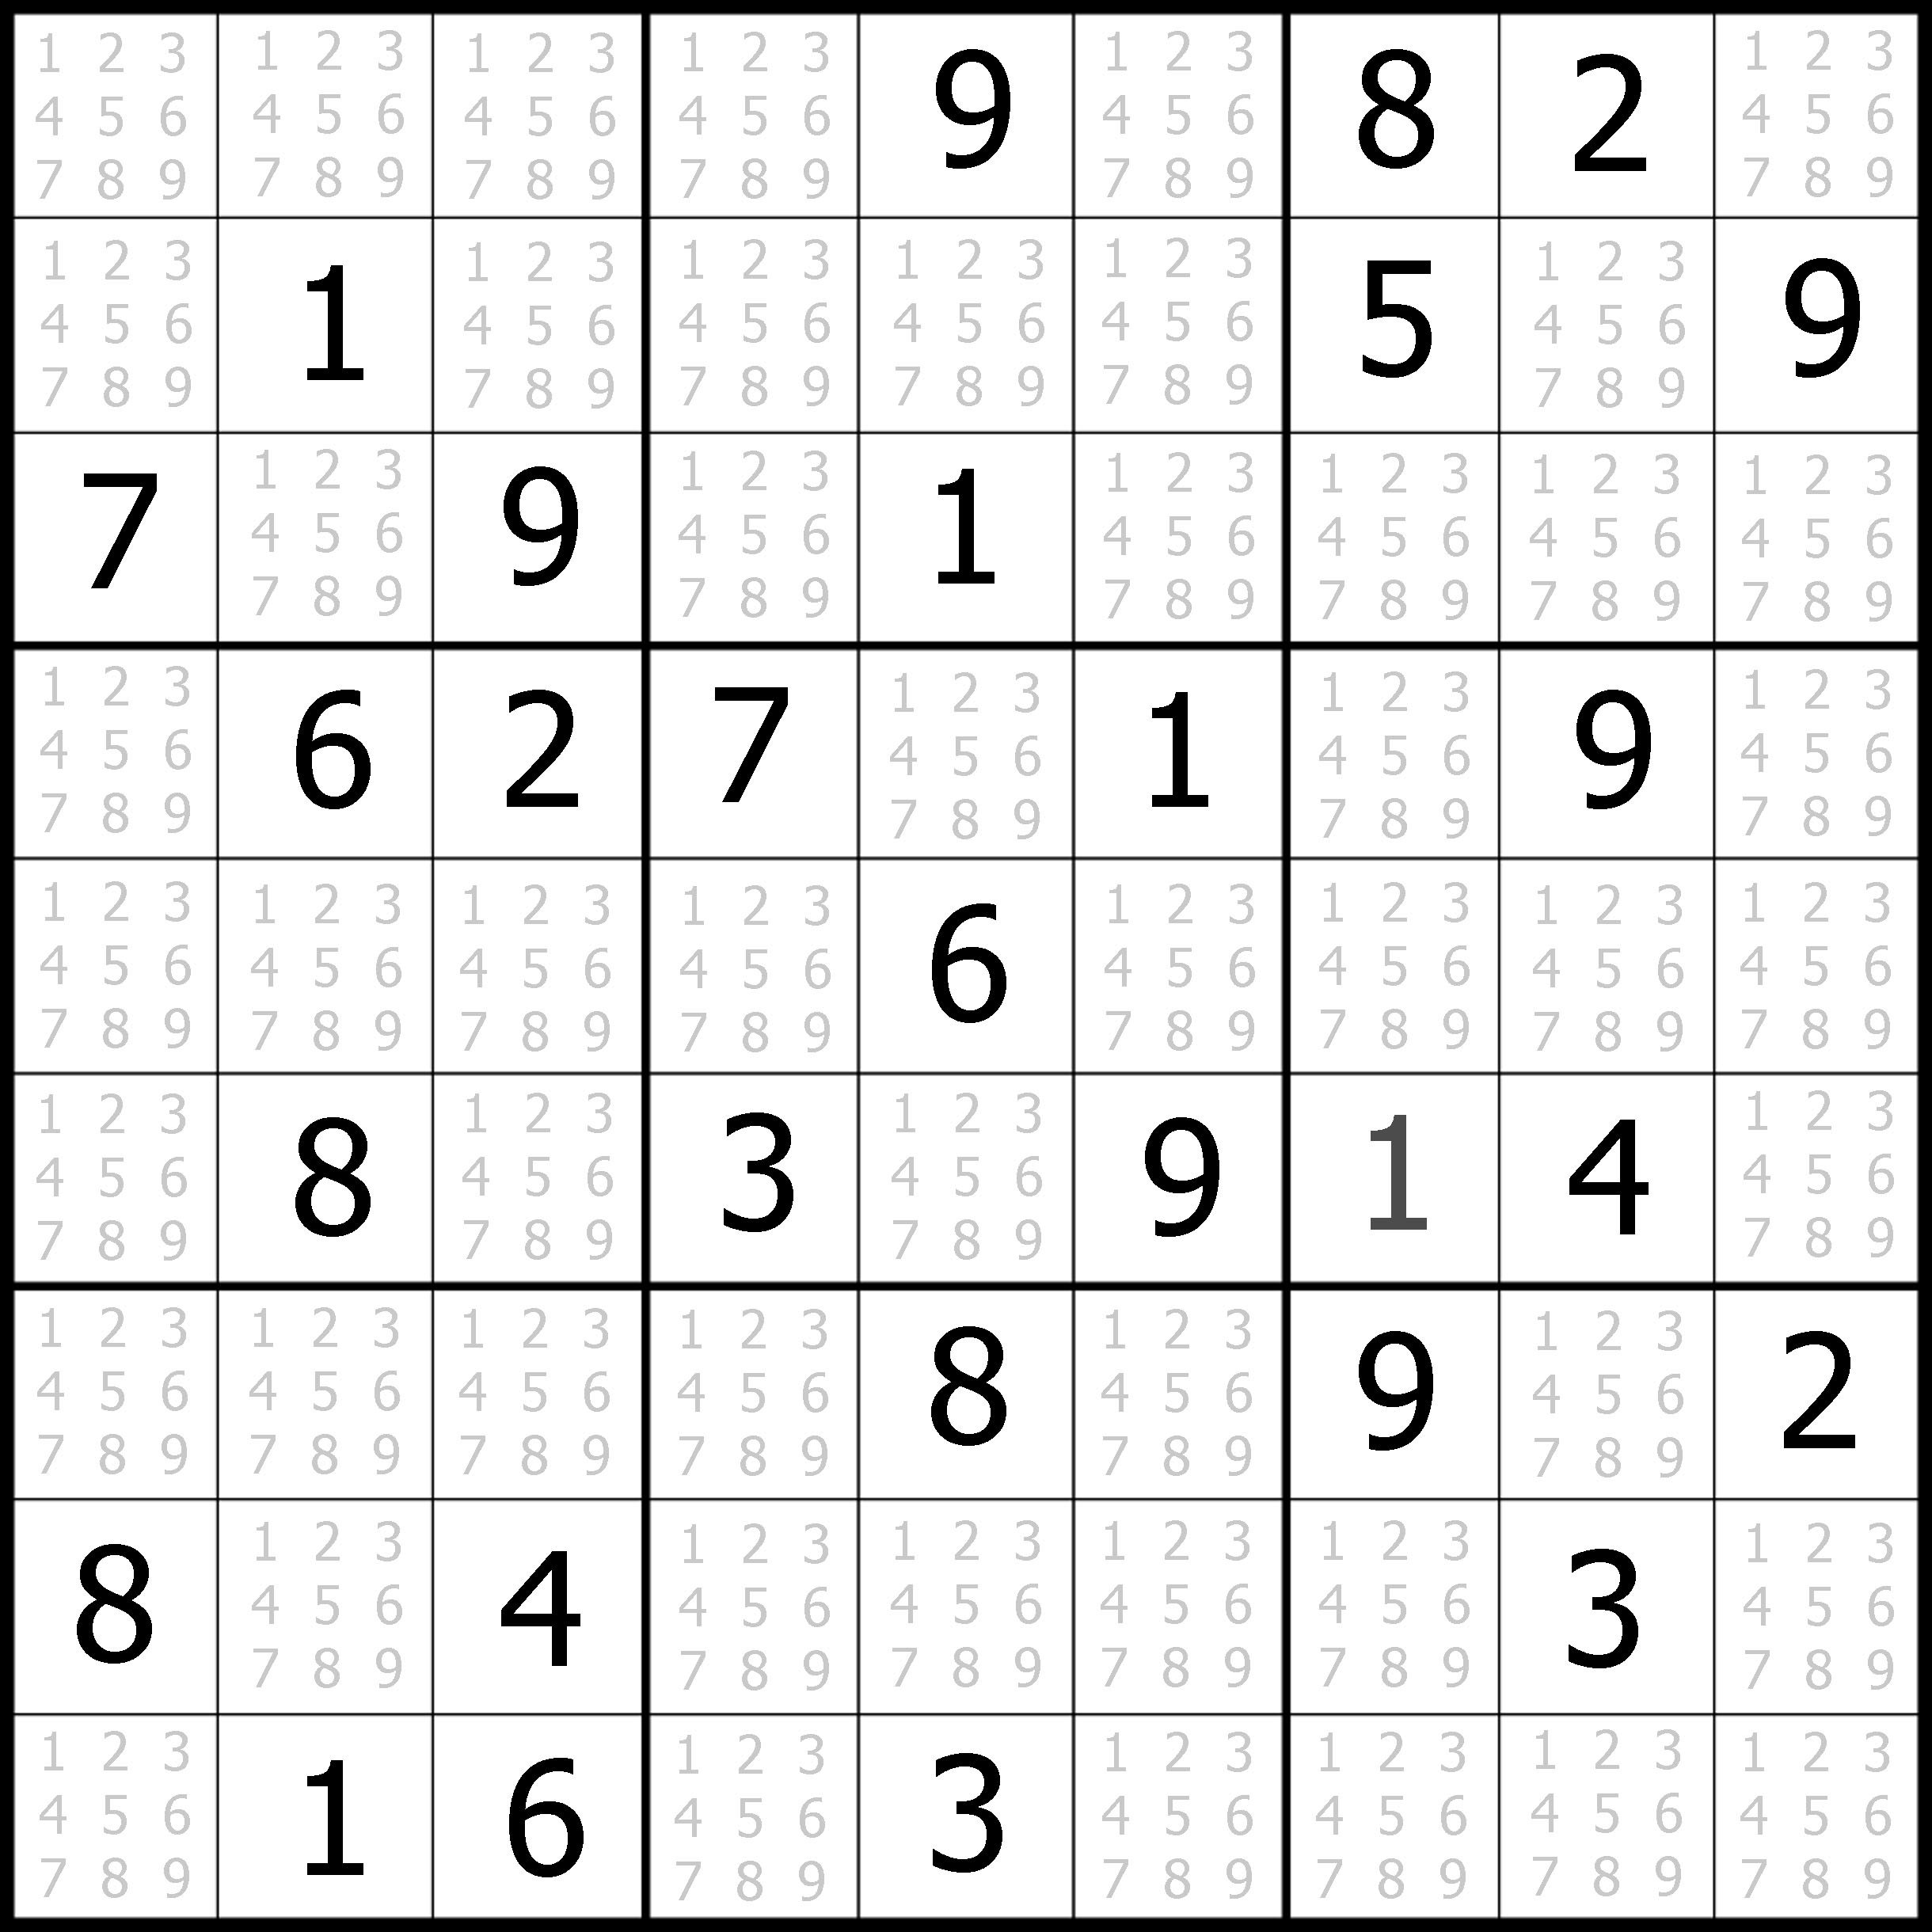 Sudoku Puzzler | Free, Printable, Updated Sudoku Puzzles With A - Printable Sudoku Puzzles For Beginners